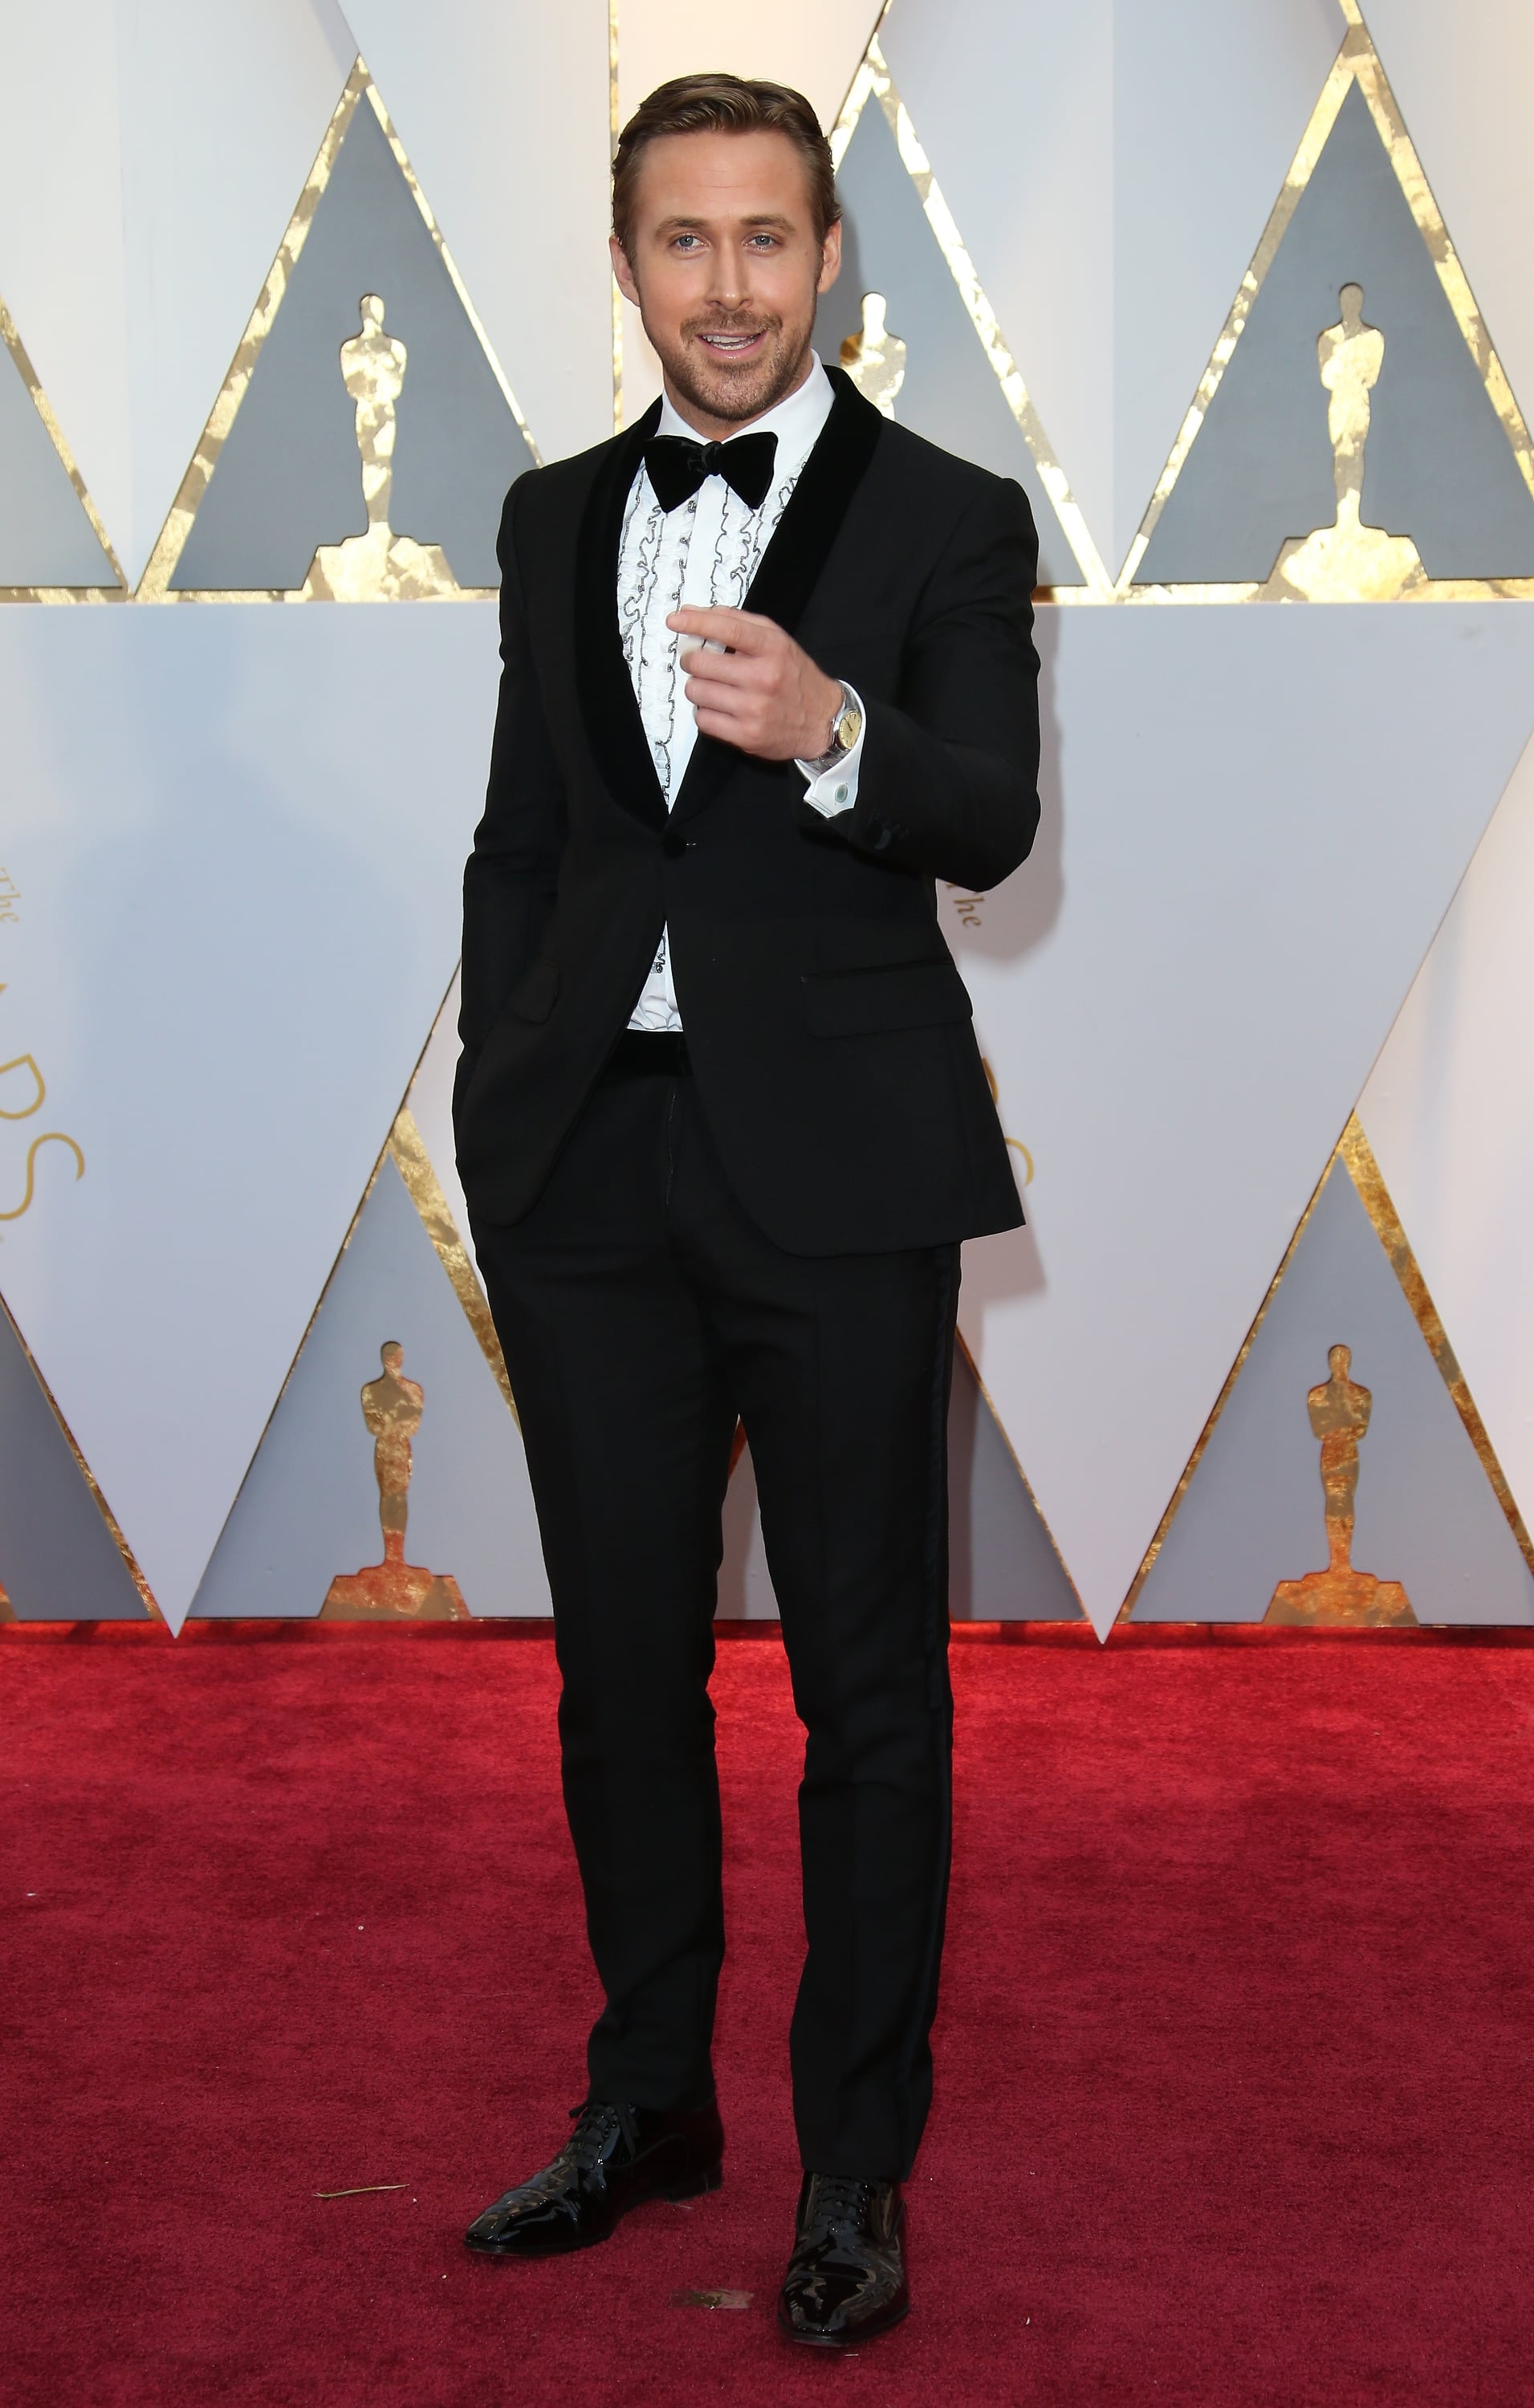 HOLLYWOOD, CA - FEBRUARY 26: Actor Ryan Gosling arrives at the 89th Annual Academy Awards at Hollywood & Highland Centre on February 26, 2017 in Hollywood, California. (Photo by Dan MacMedan/Getty Images)